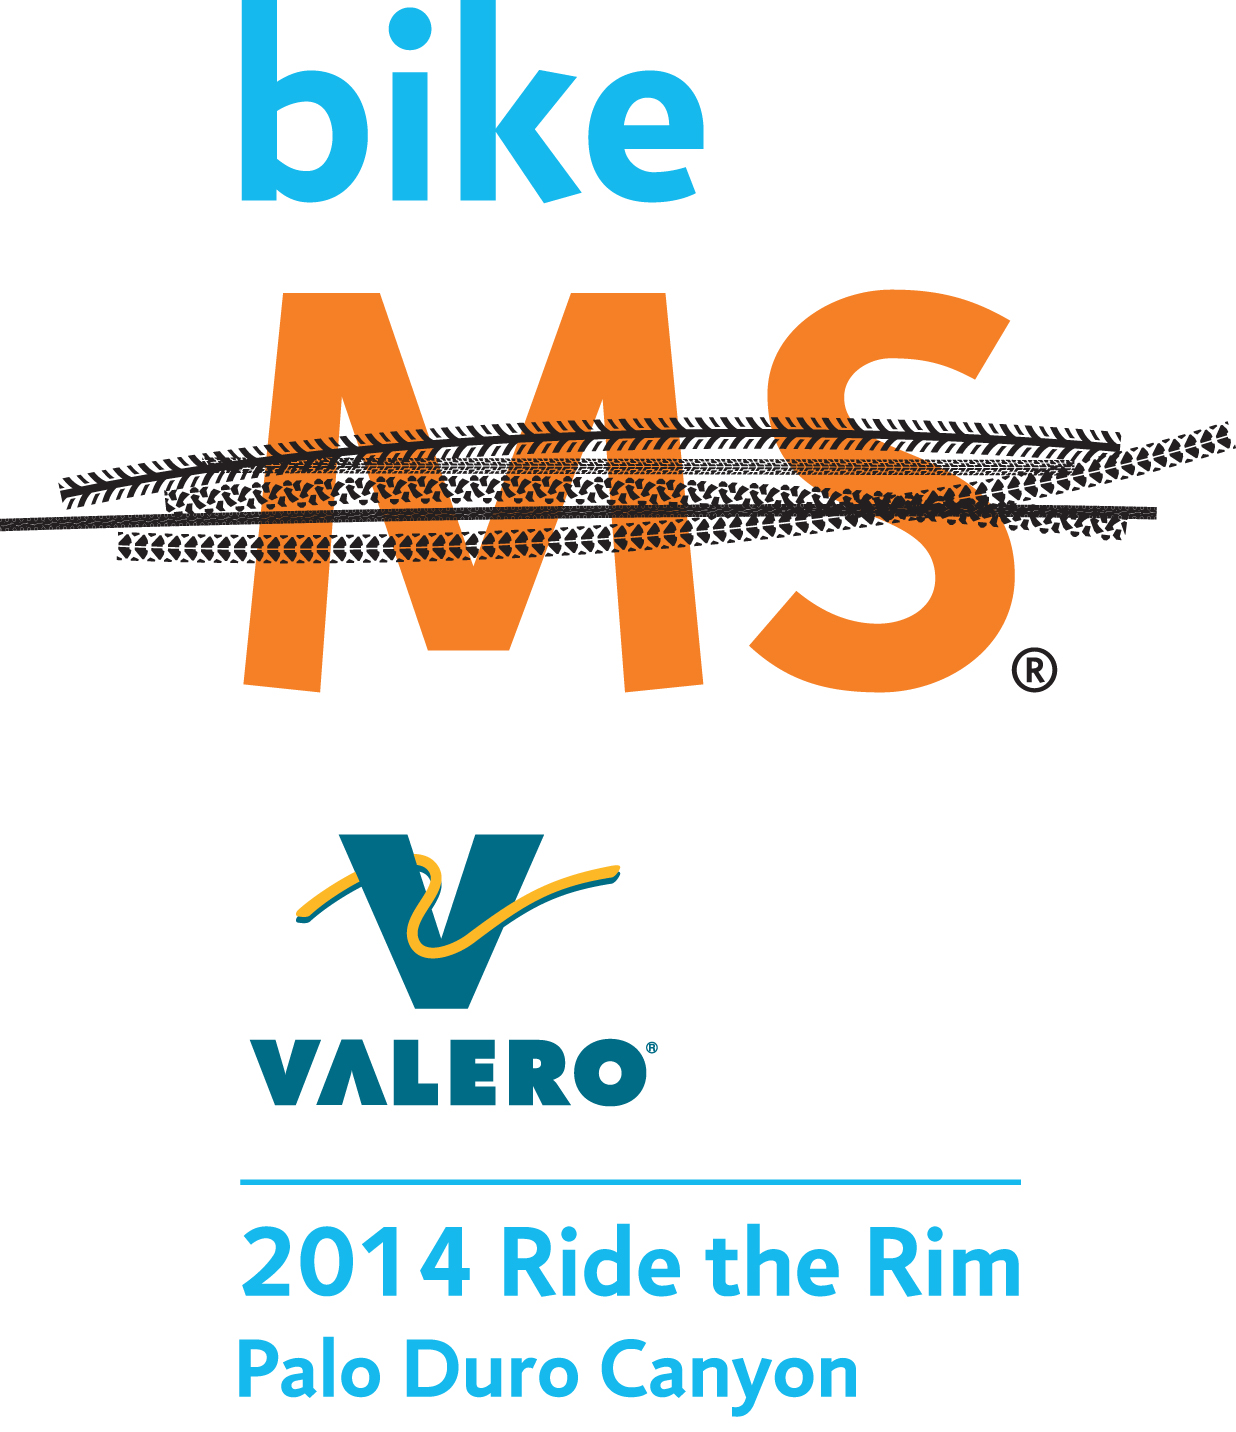 Ride Interview - Bike MS: Valero Ride the Rim - Palo Duro Canyon, TX